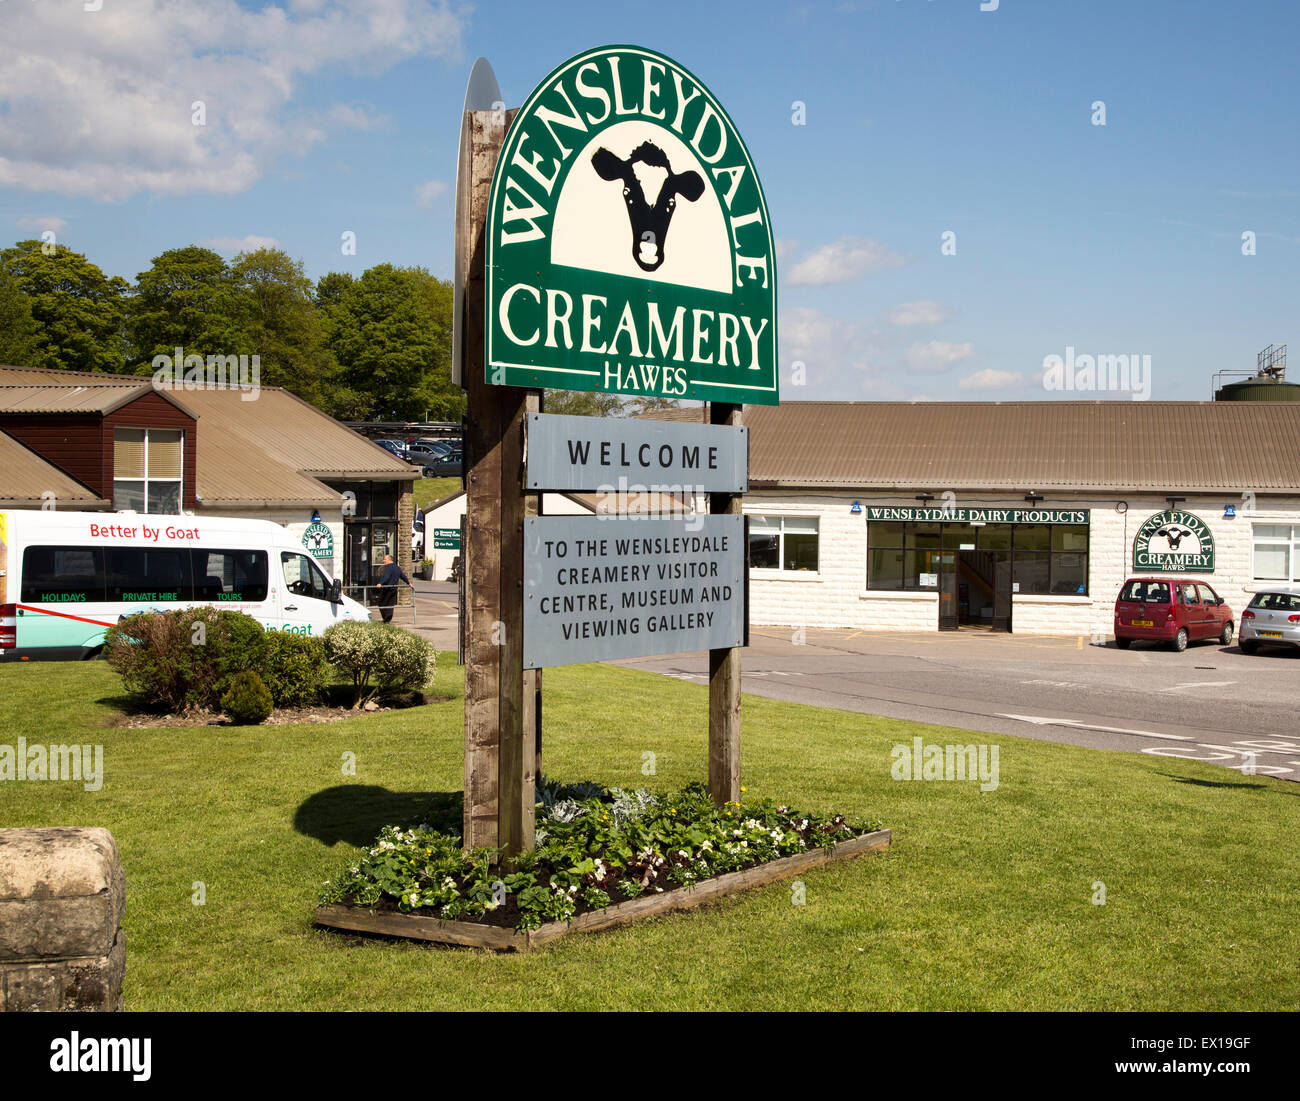 Wensleydale Creamery cheese factory visitor centre, Hawes, Yorkshire Dales national park, England, UK Stock Photo